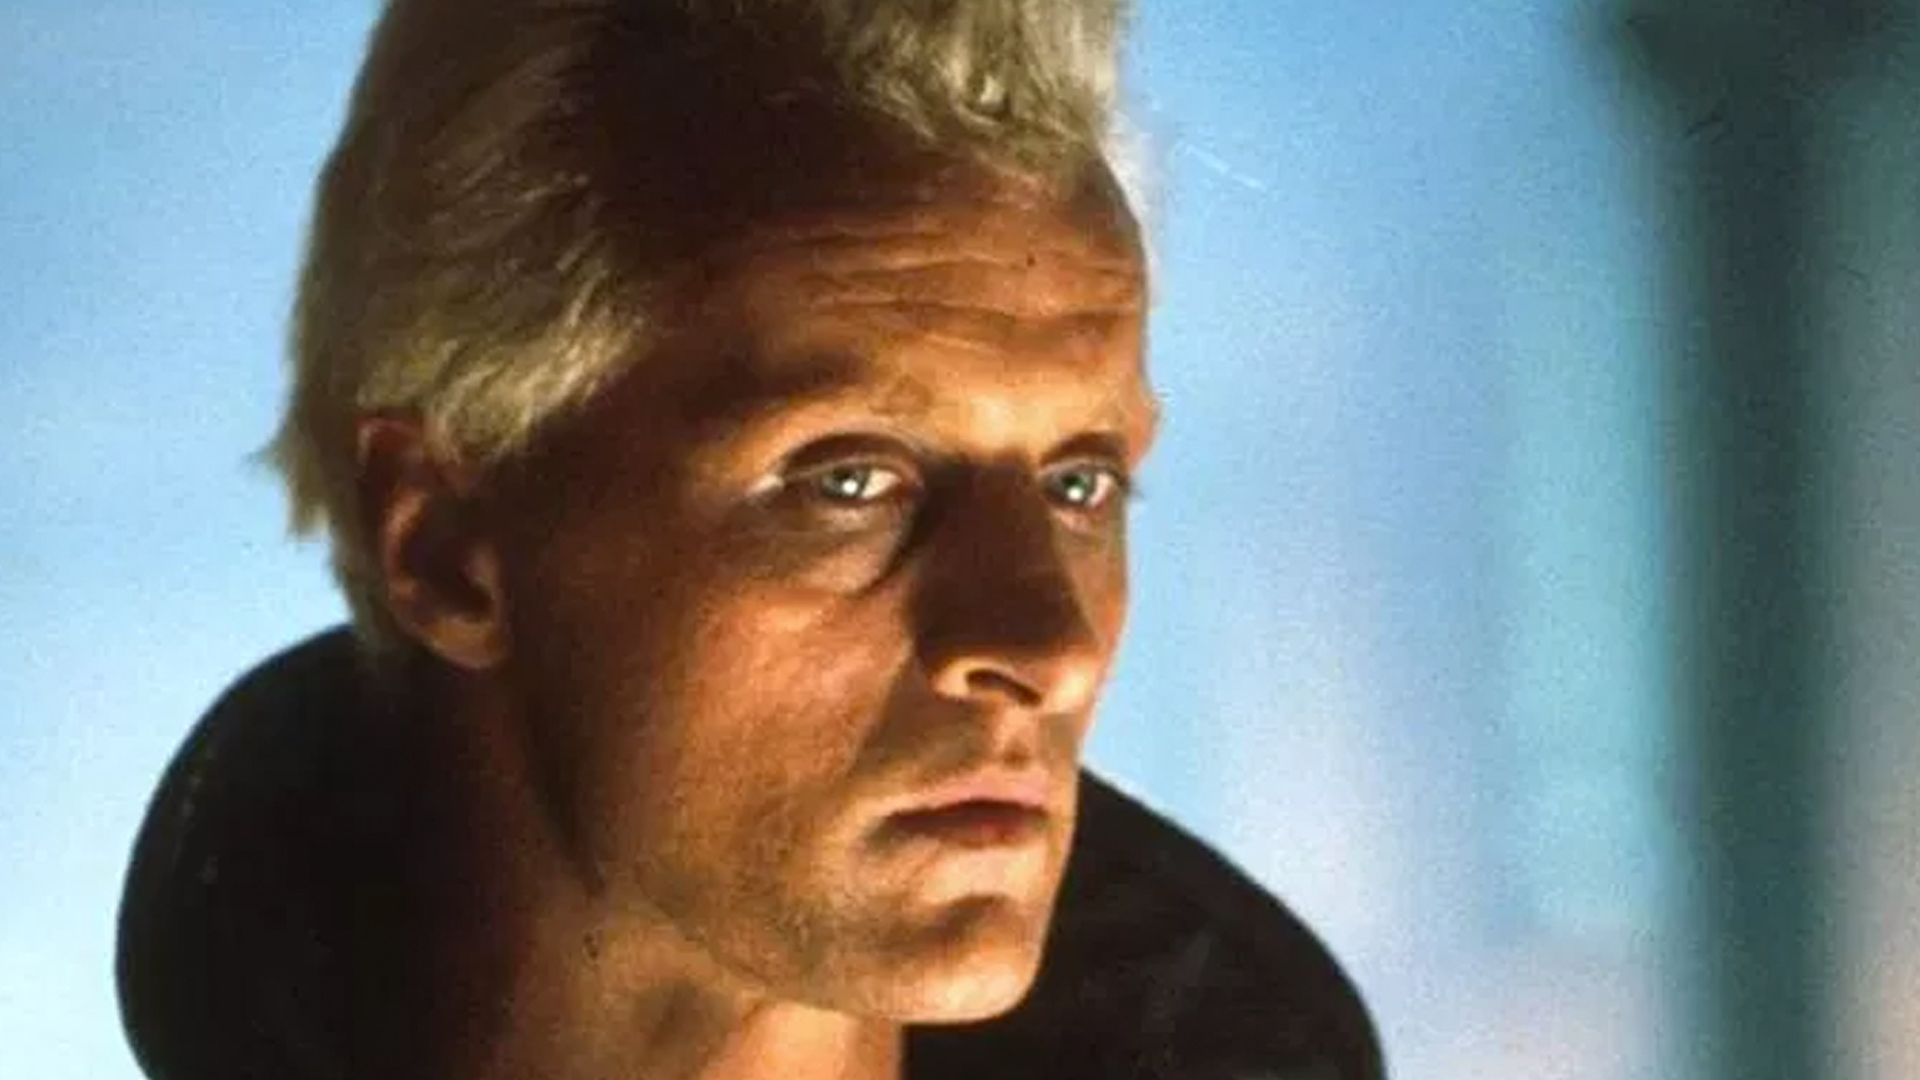 """Actor Rutger Hauer is seen in the 1982 film """"Blade Runner."""" (Credit: The Ladd Company)"""